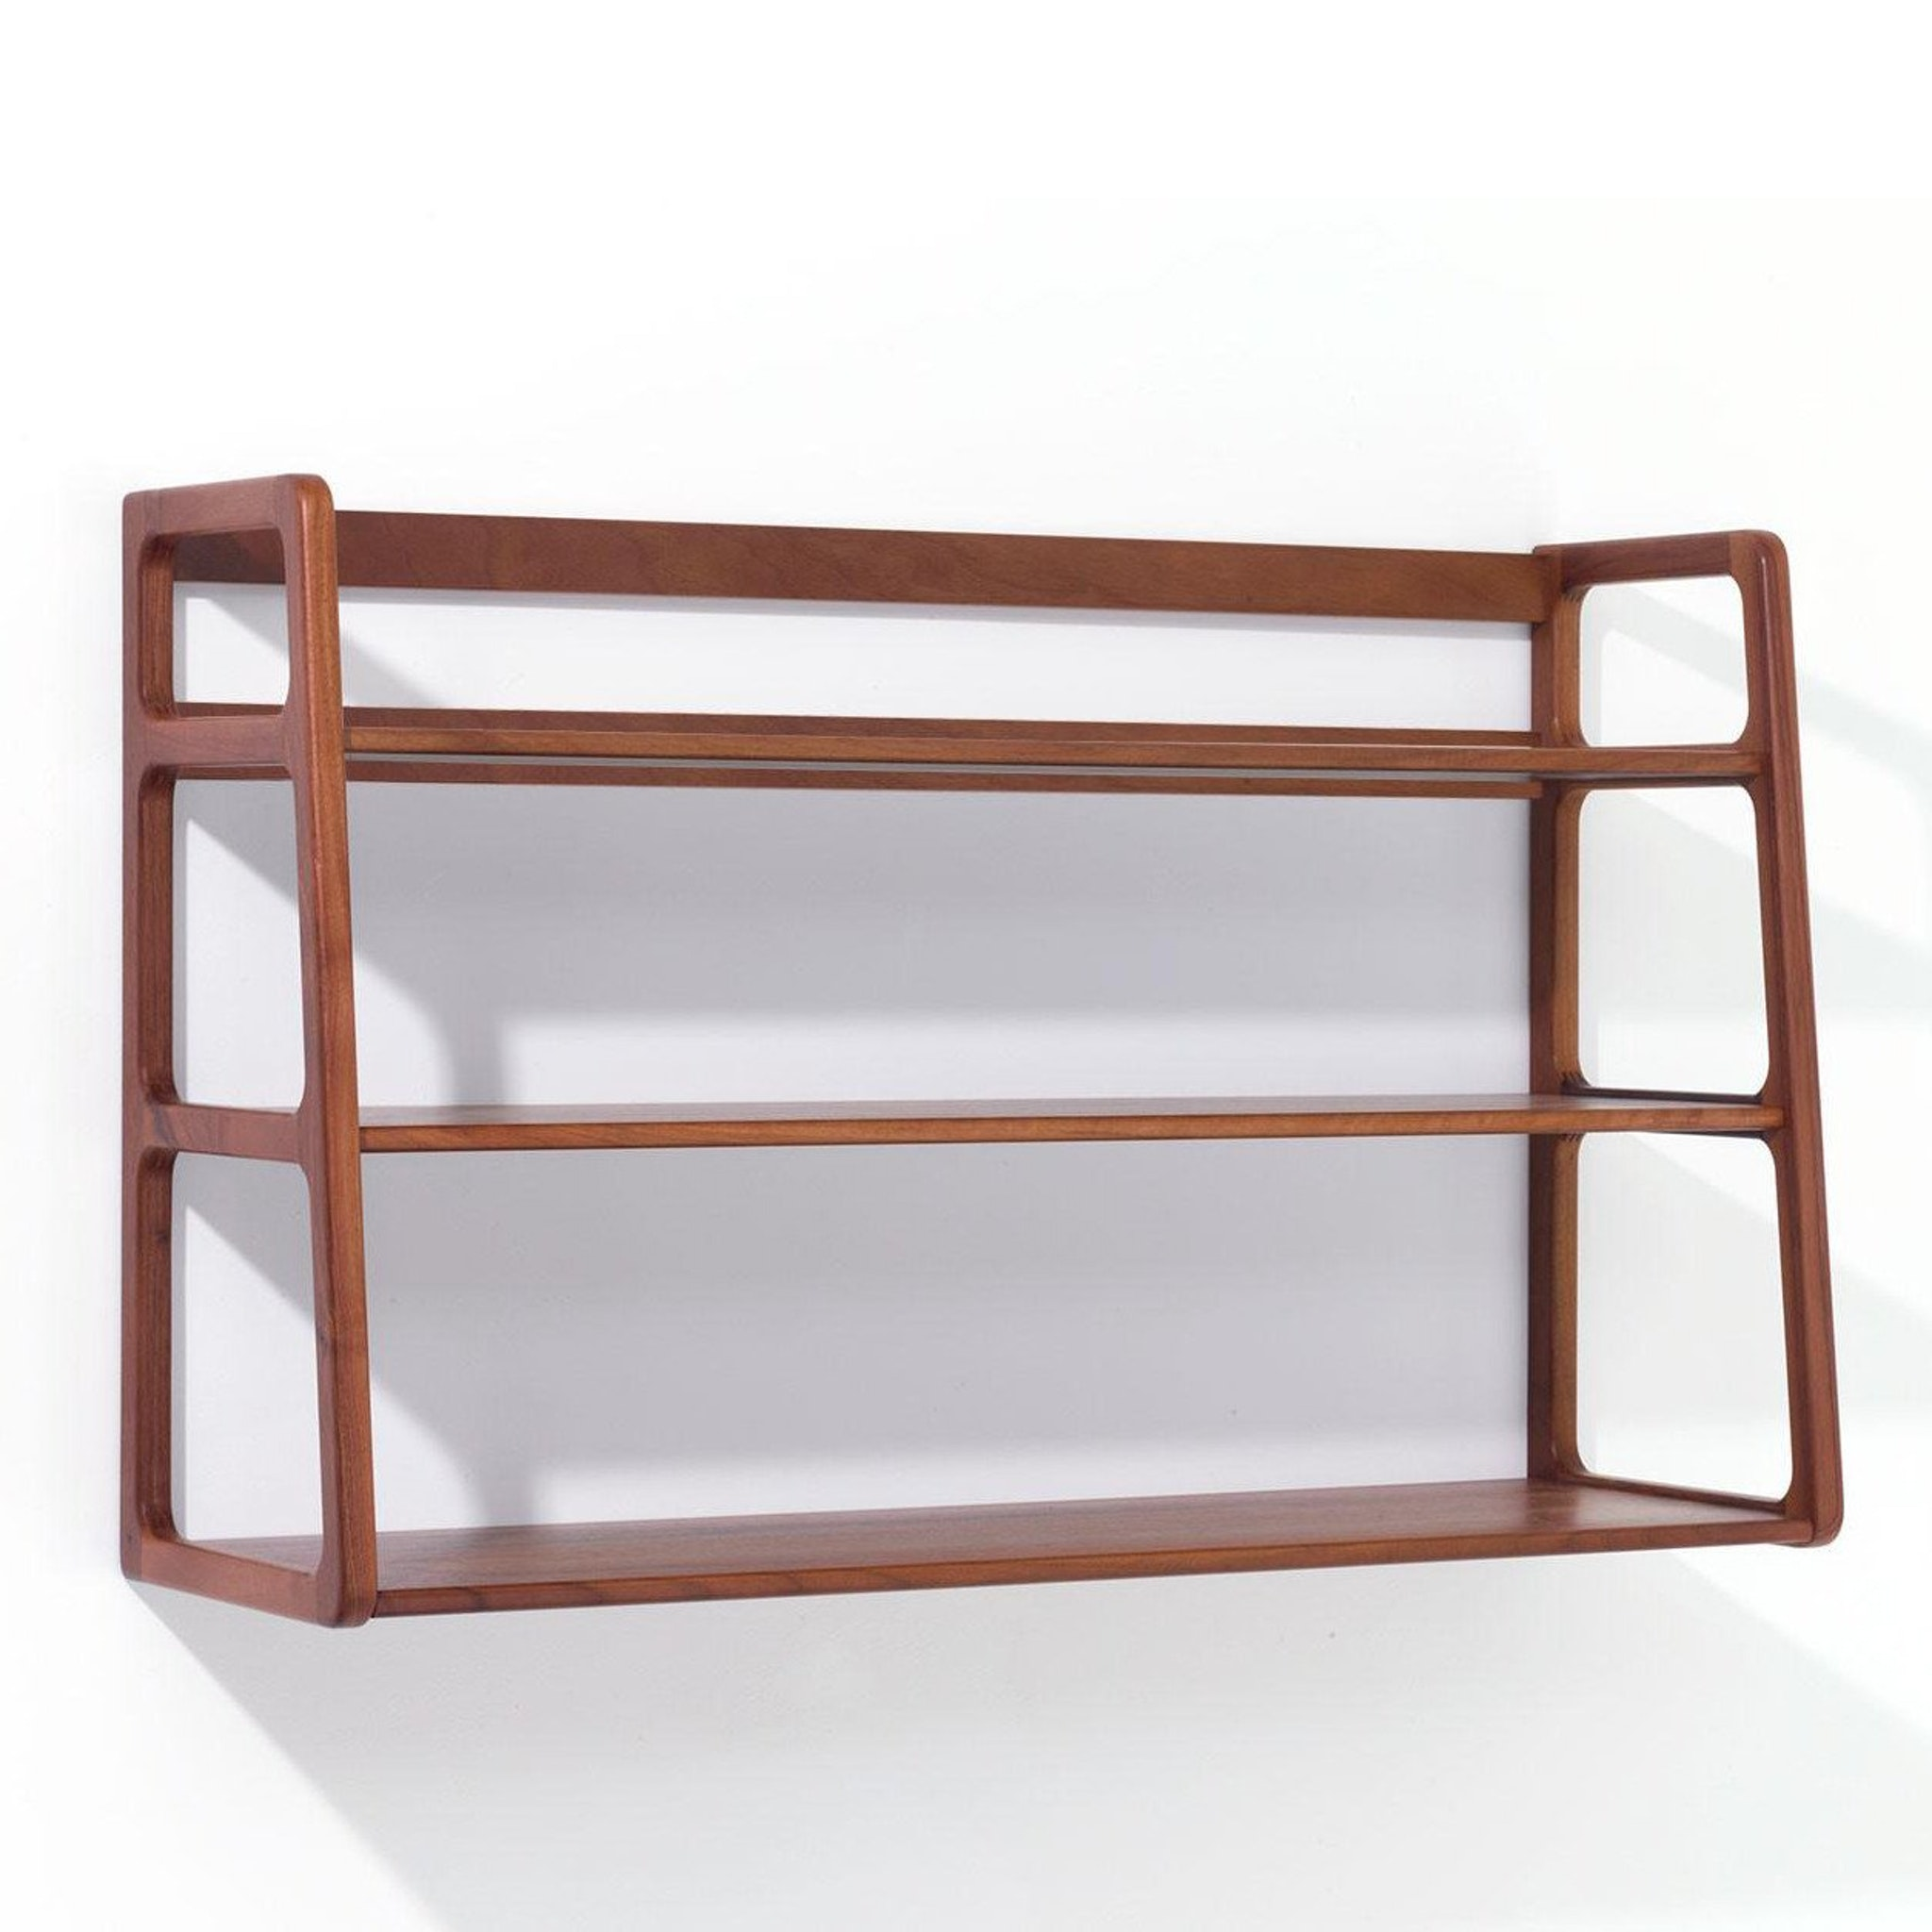 Agnes Wall Mounted Shelves by SCP